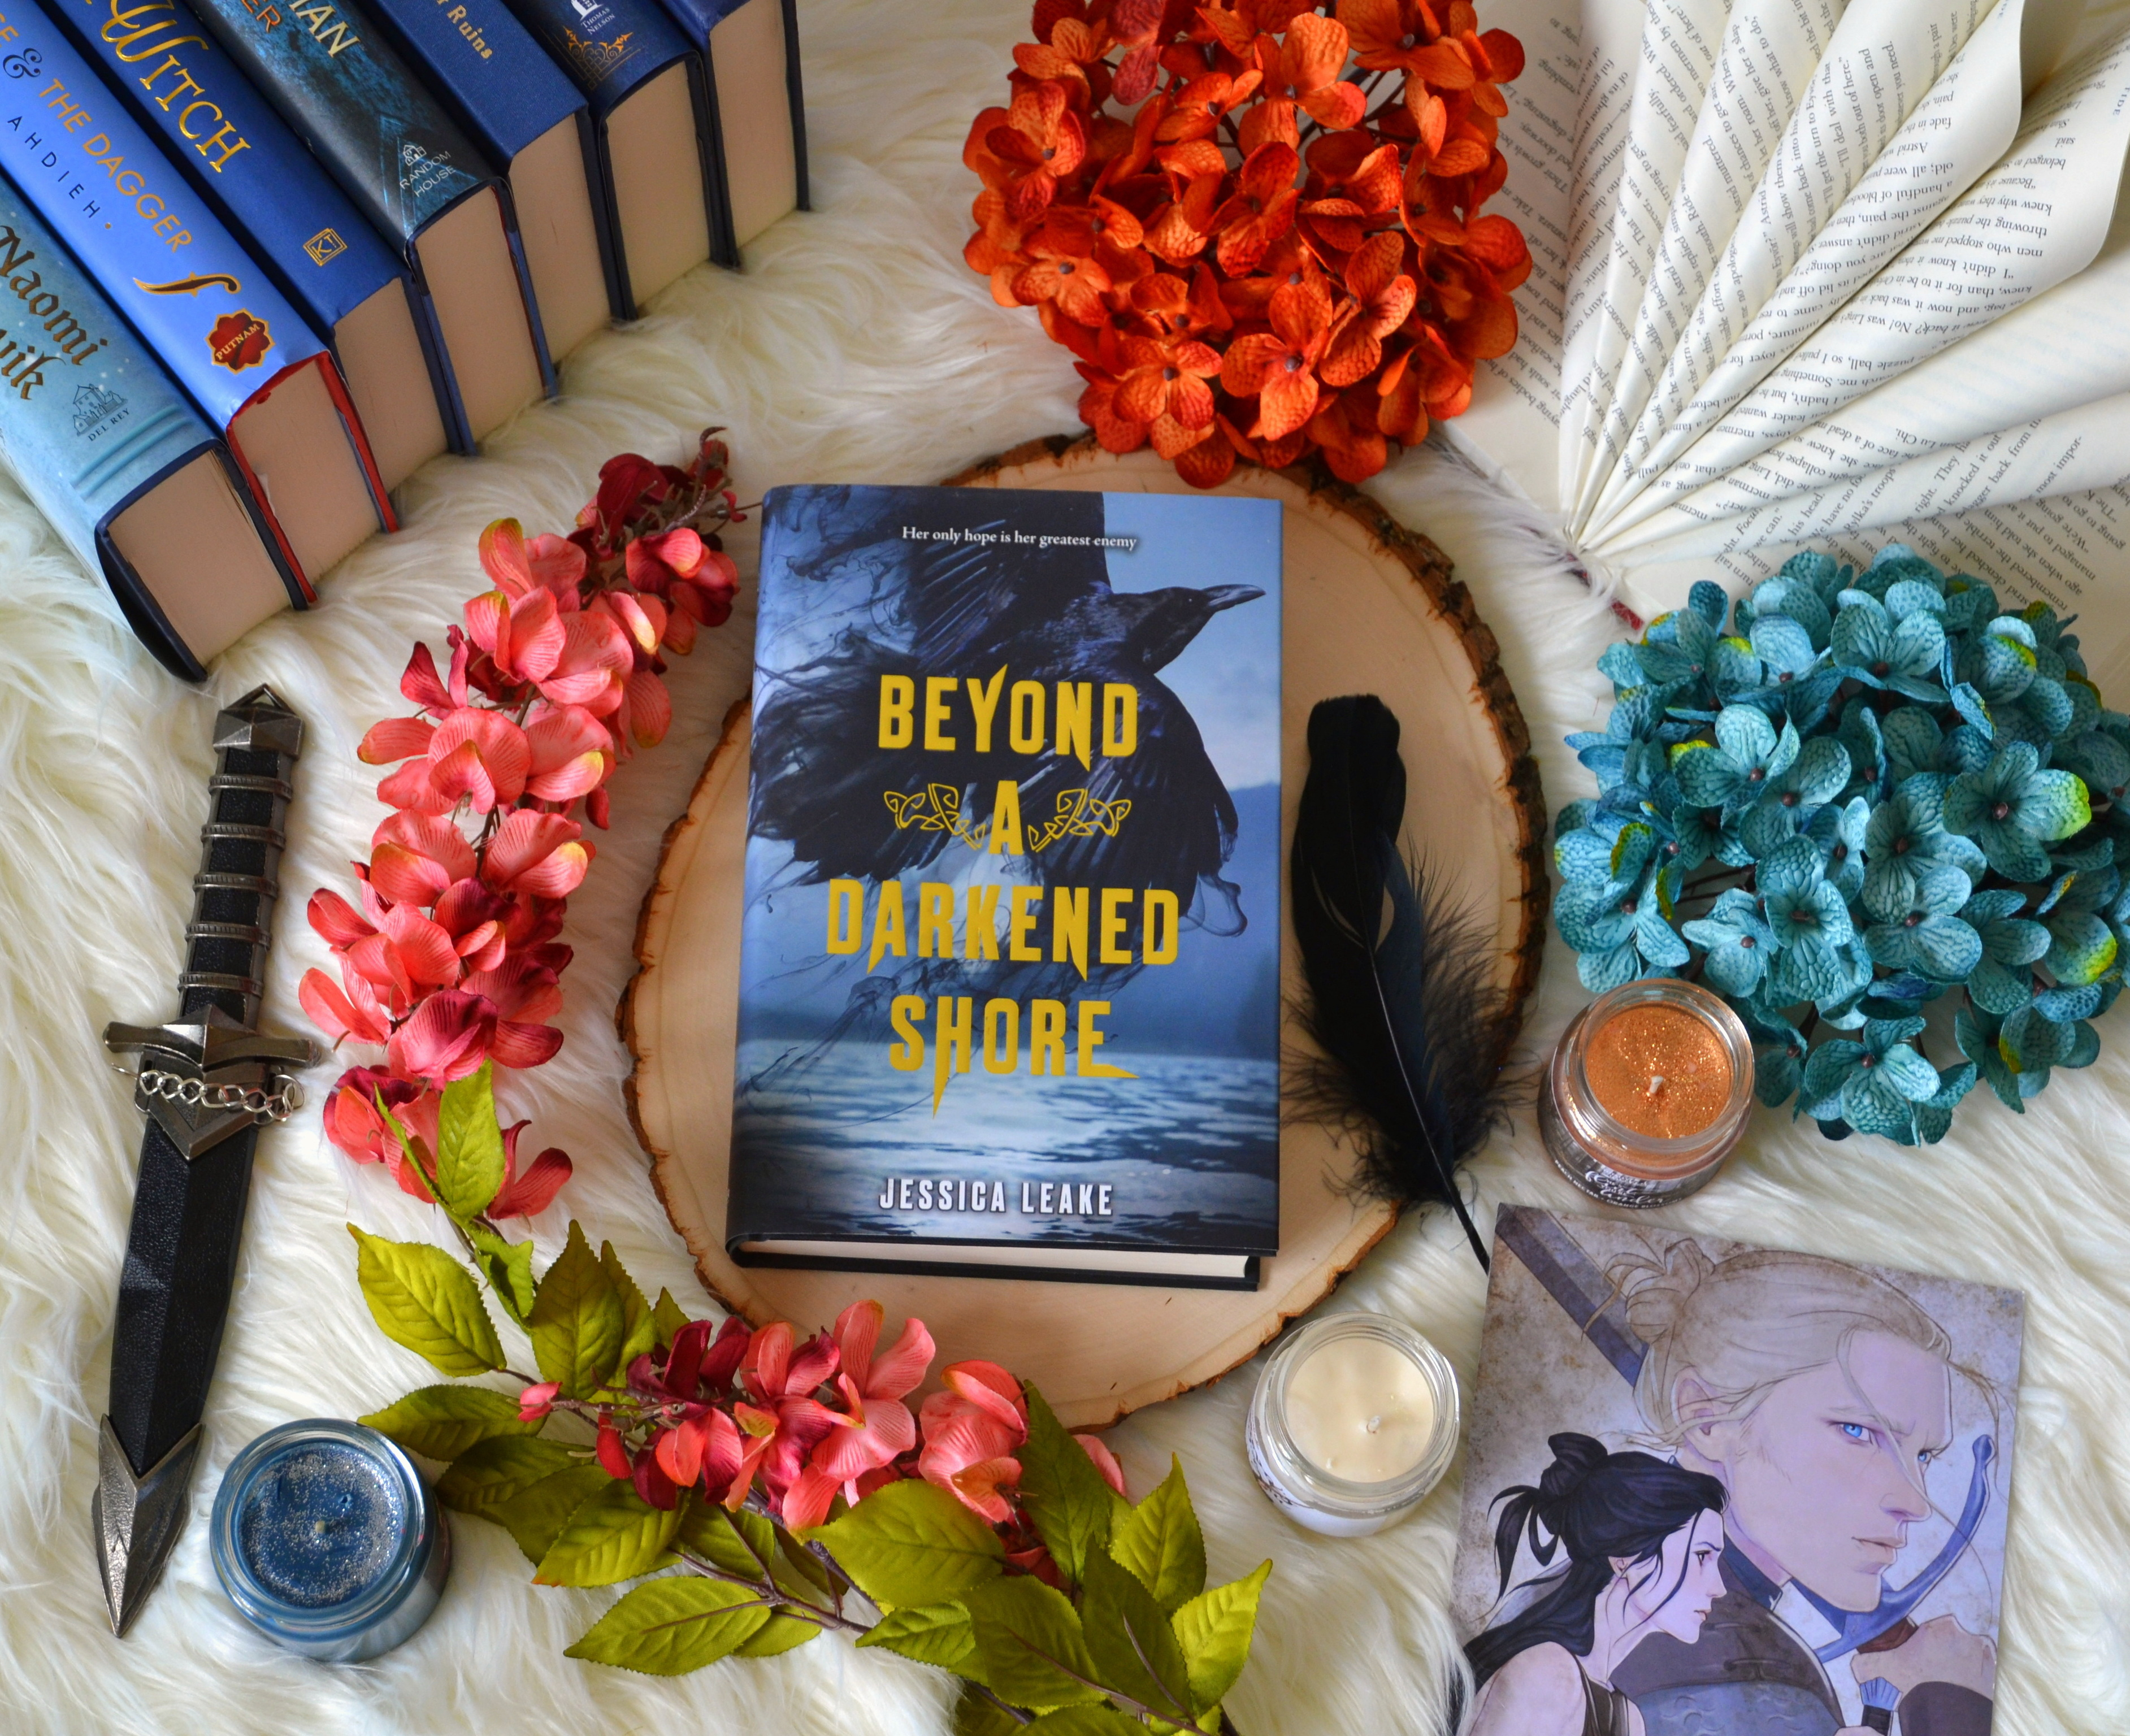 Beyond a Darkened Shore by Jessica Leake   Review